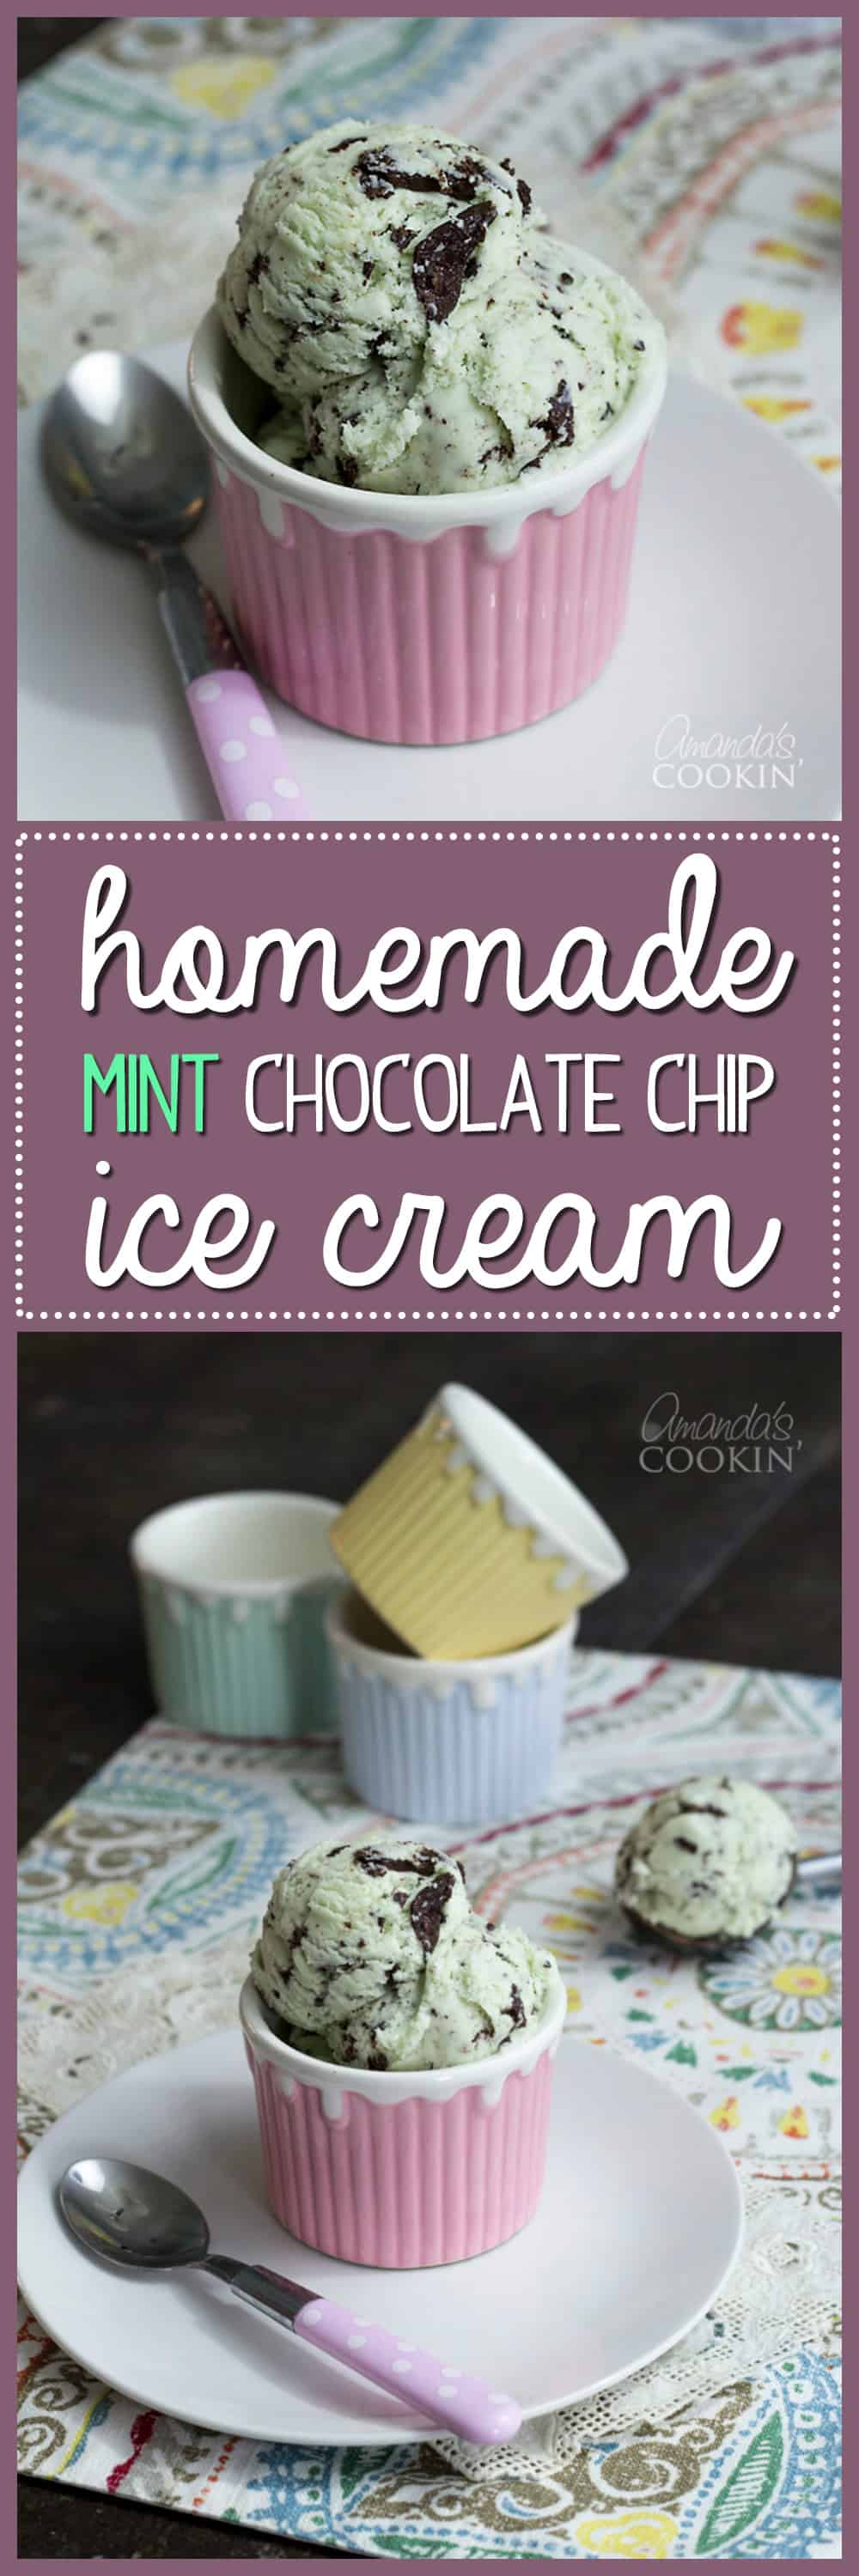 This ultra delicious homemade mint chocolate chip ice cream truly is oh so dreamy! Indulge with this smooth and creamy homemade ice cream recipe tonight!